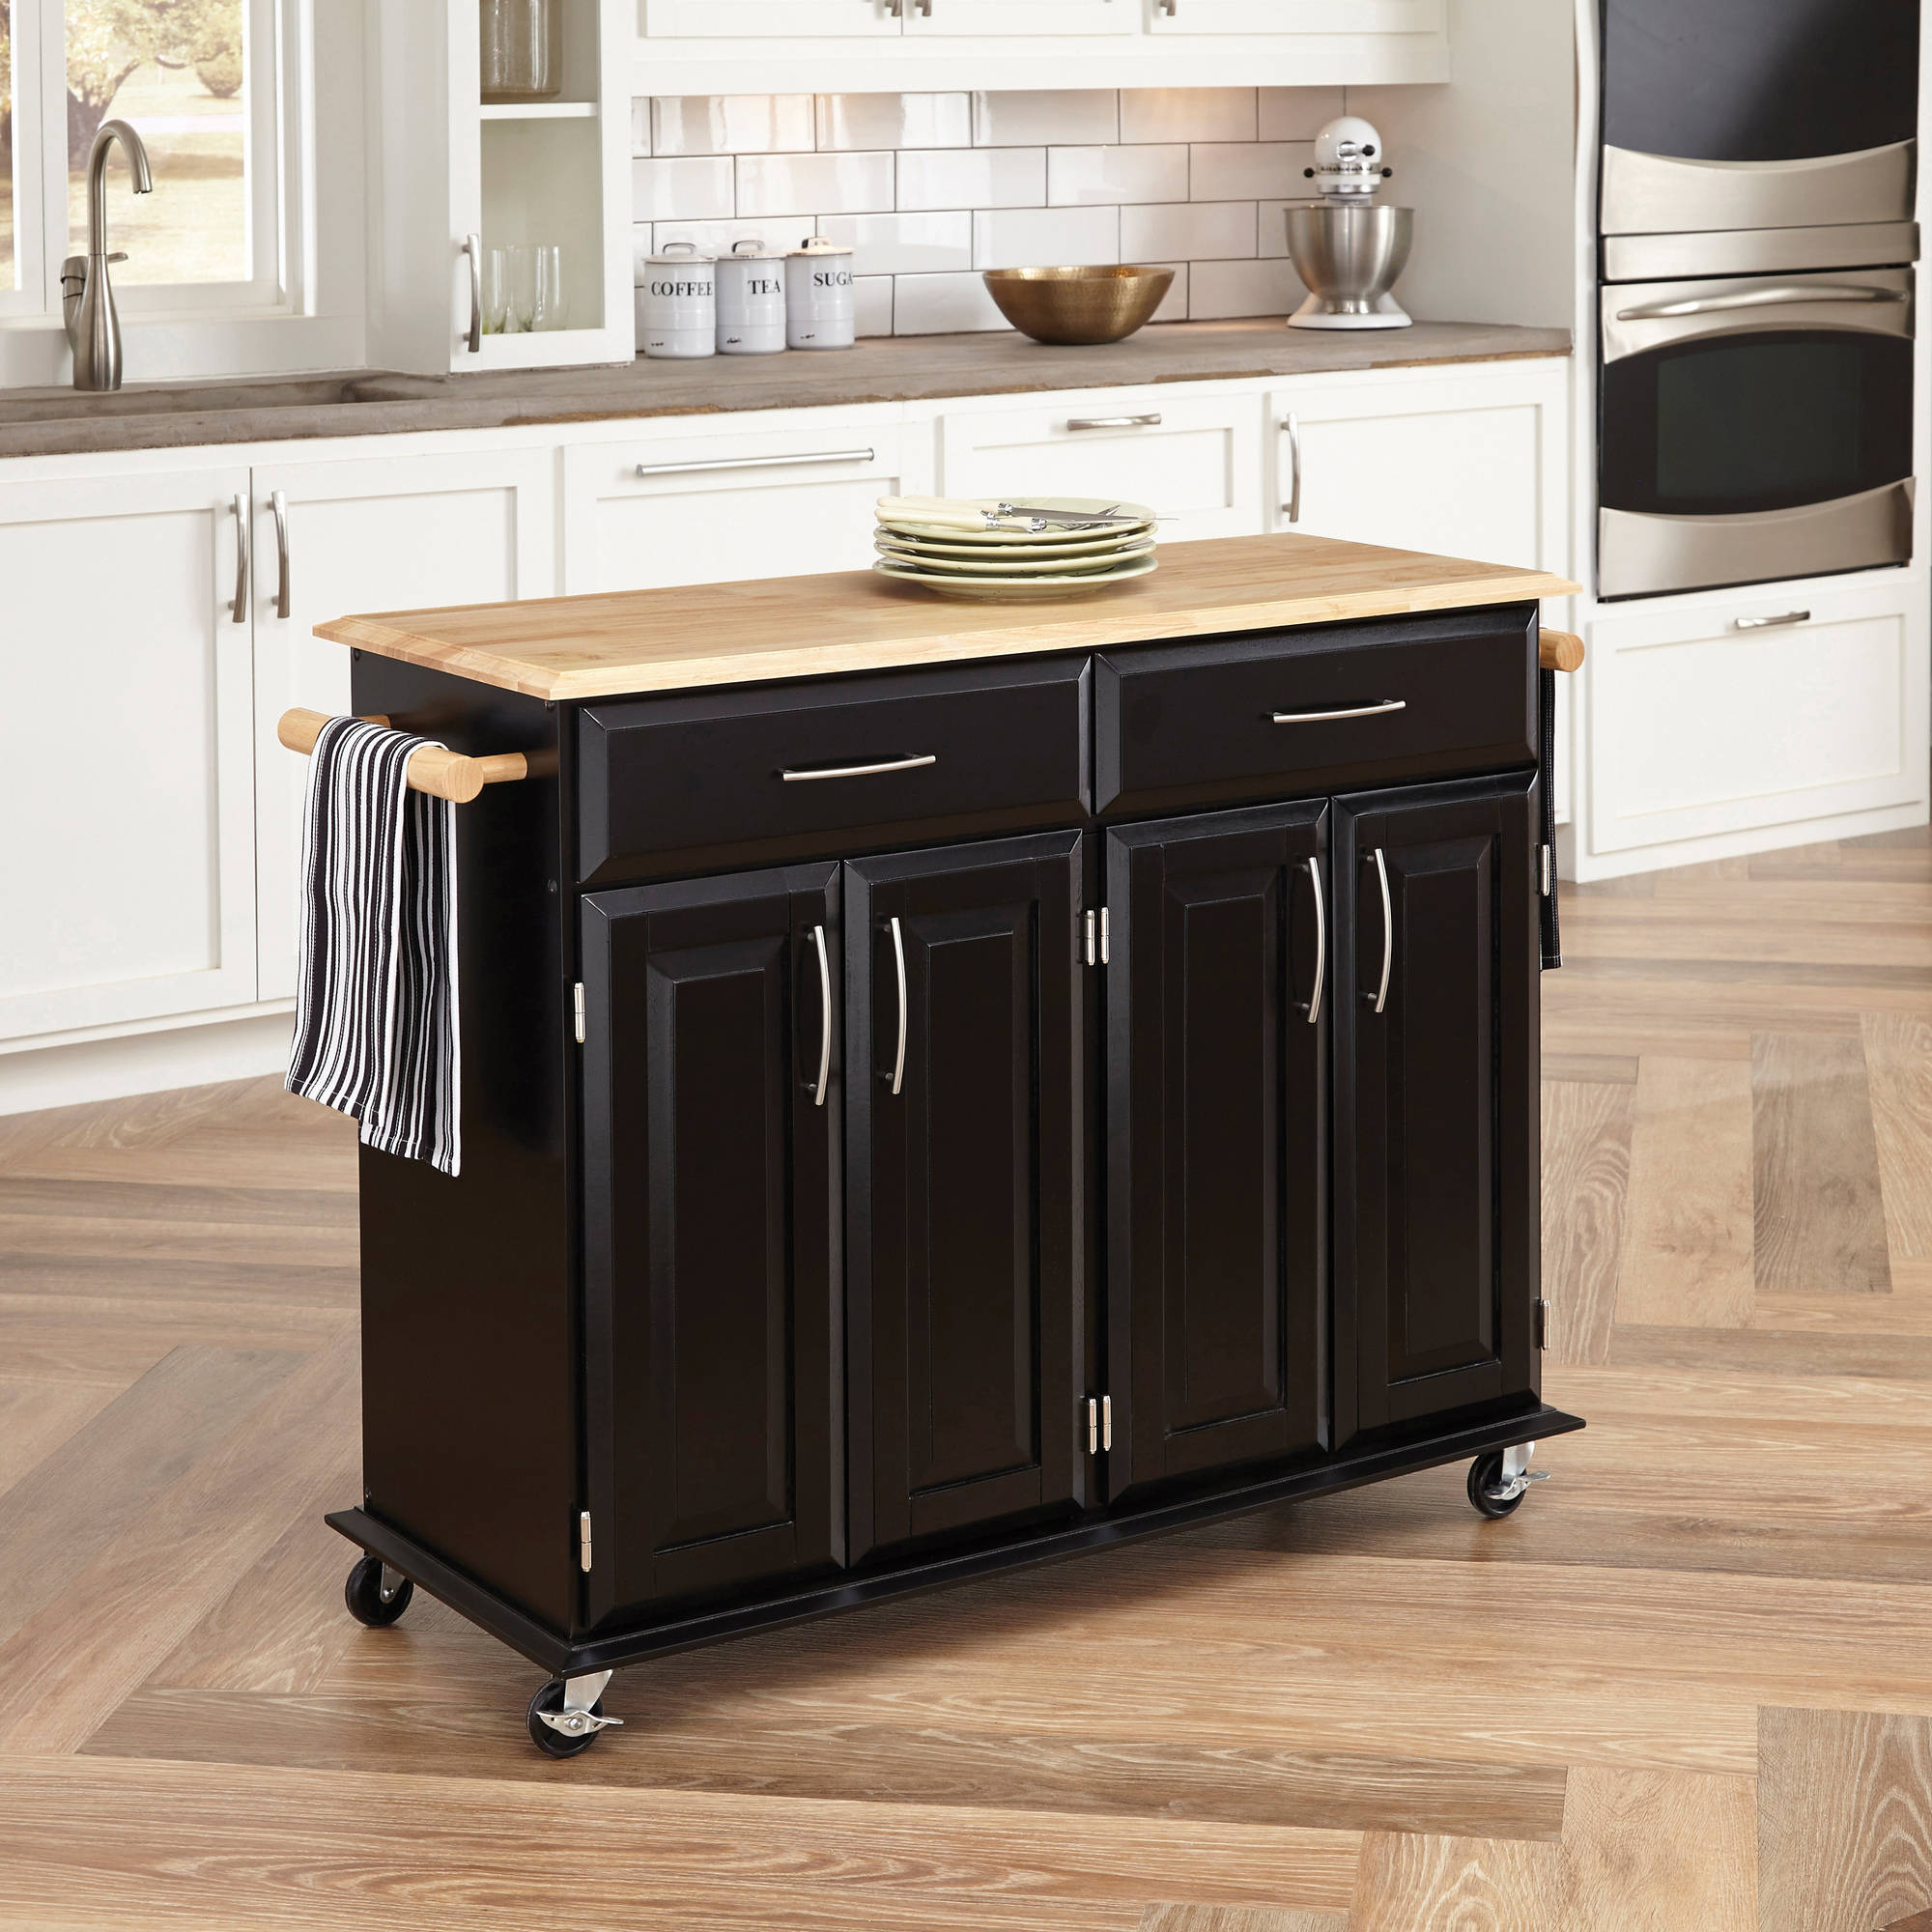 Dolly Madison Kitchen Island Cart Wood/Black/Natural - Home Styles